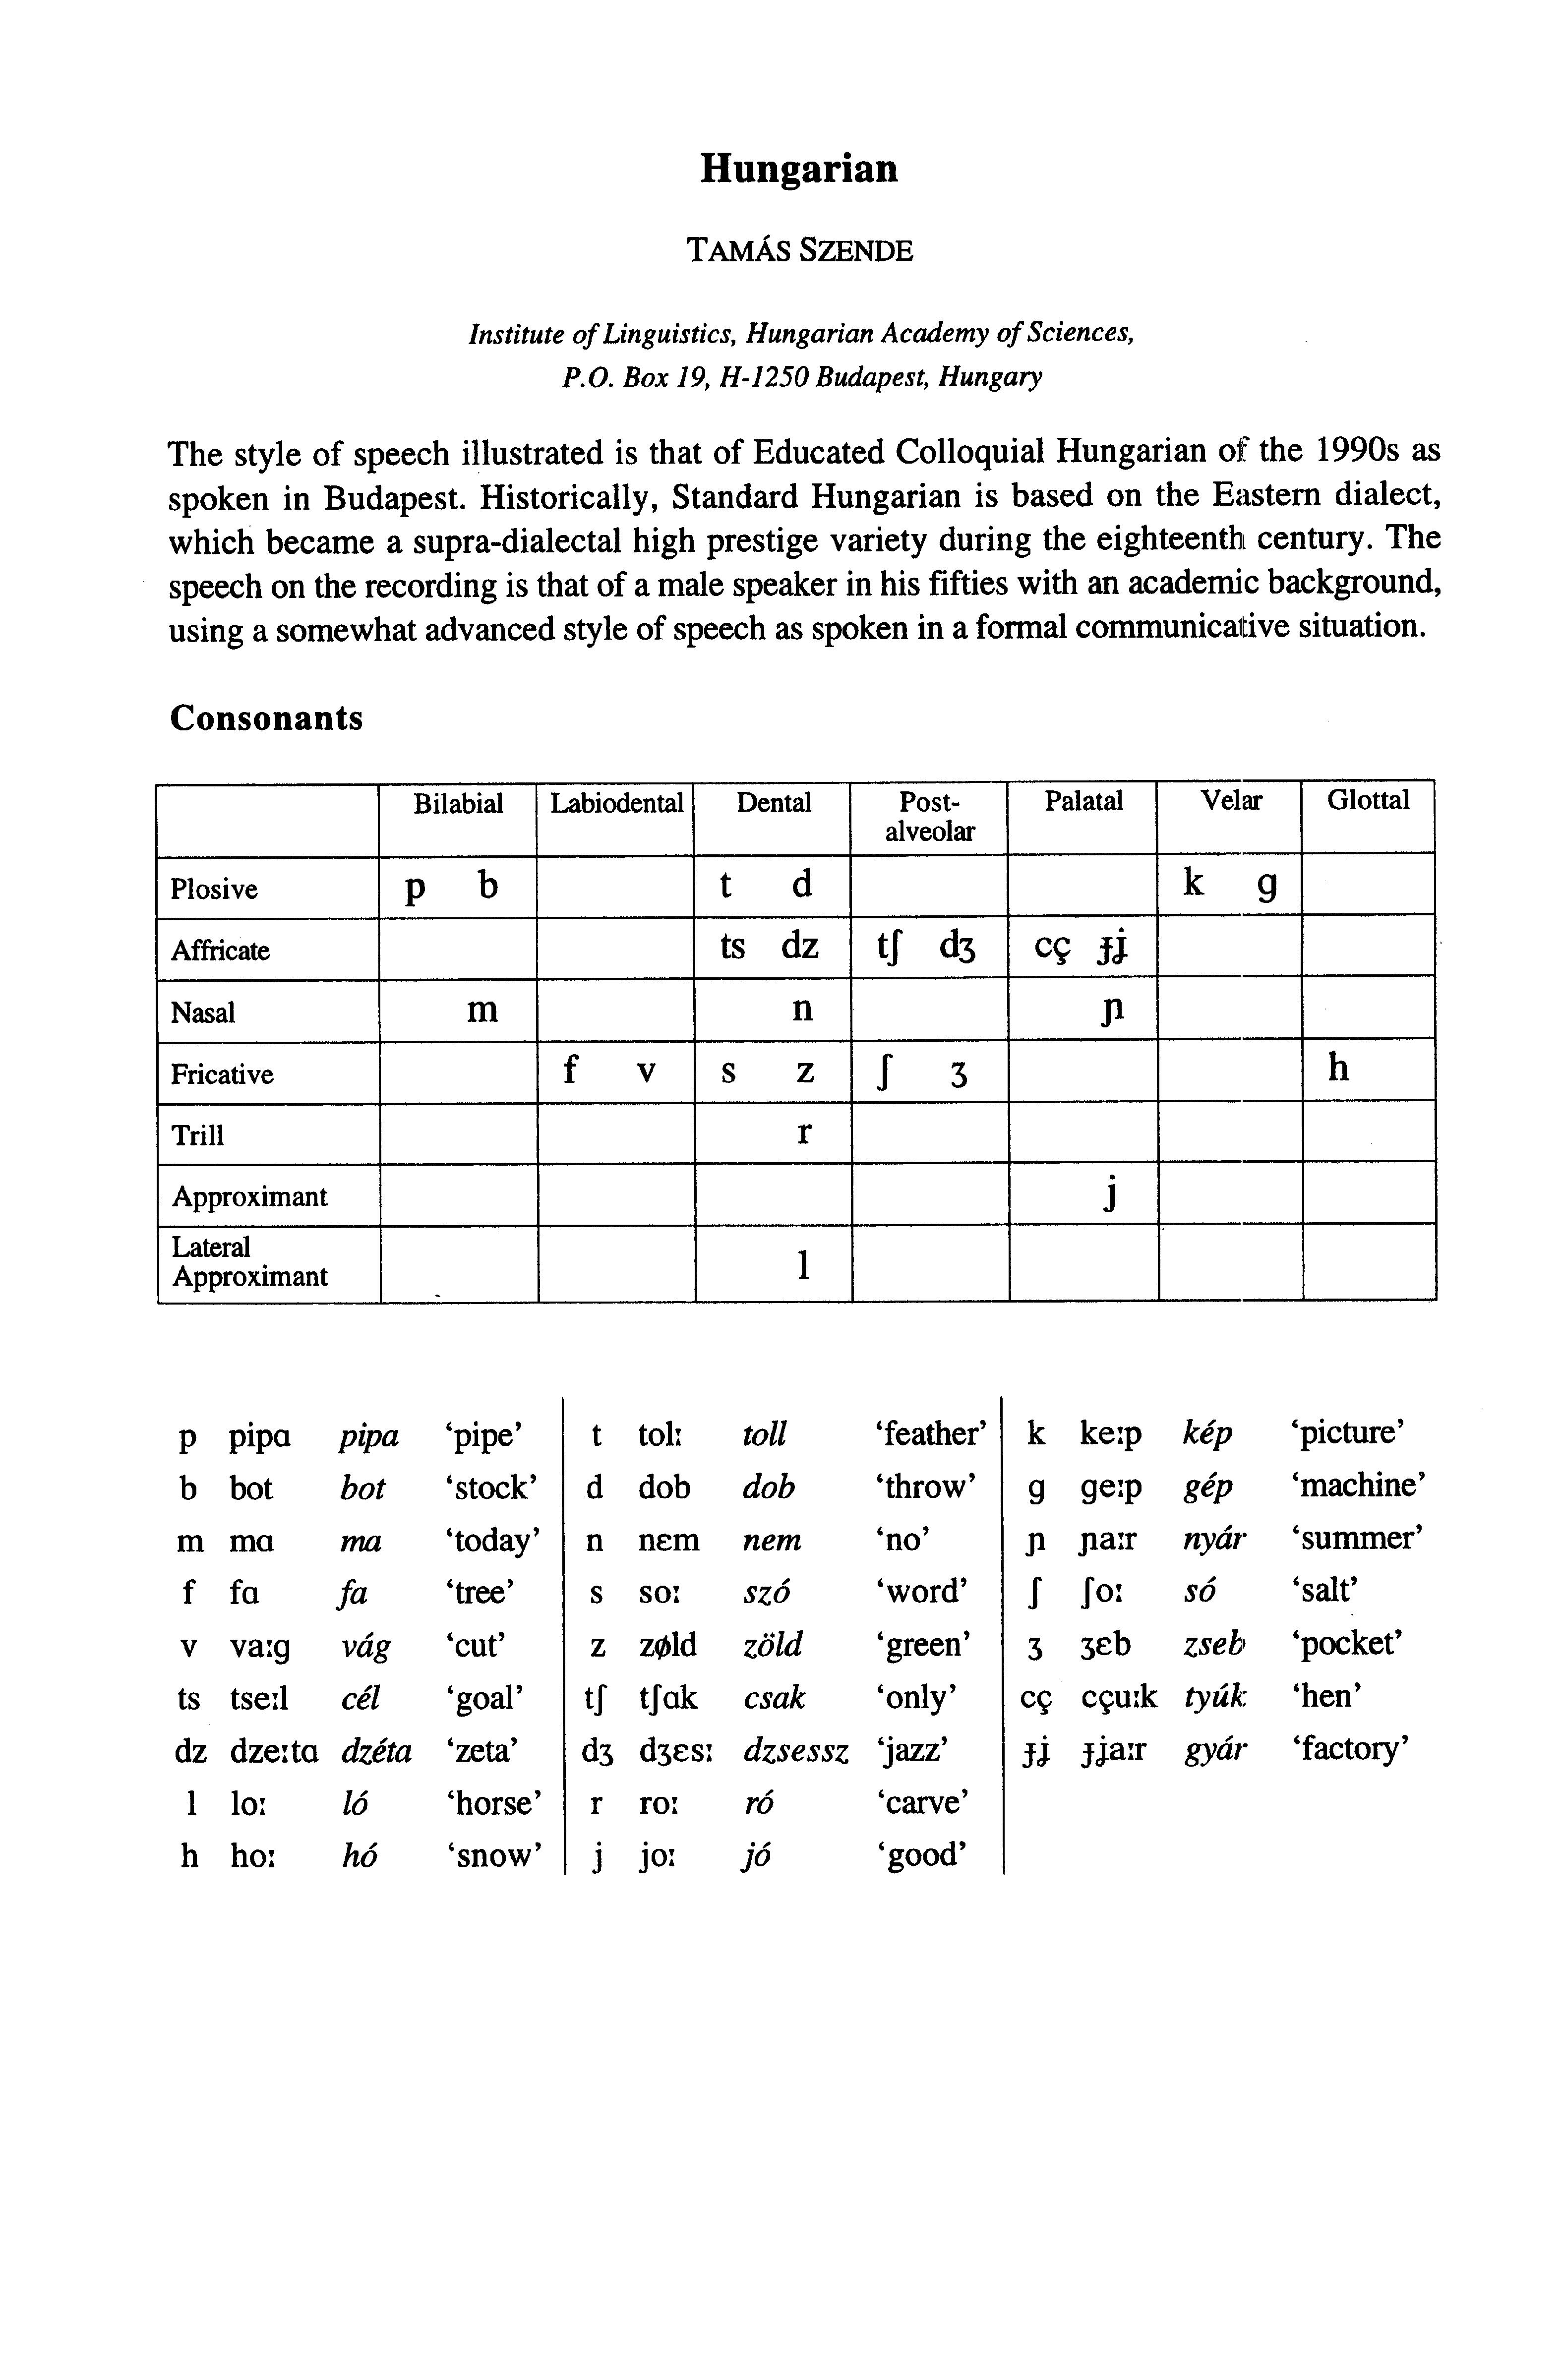 Handbook Of The International Phonetic Association A Guide To The Use Of The International Phonetic Alphabet Hungarian Szende Tamas Free Download Borrow And Streaming Internet Archive